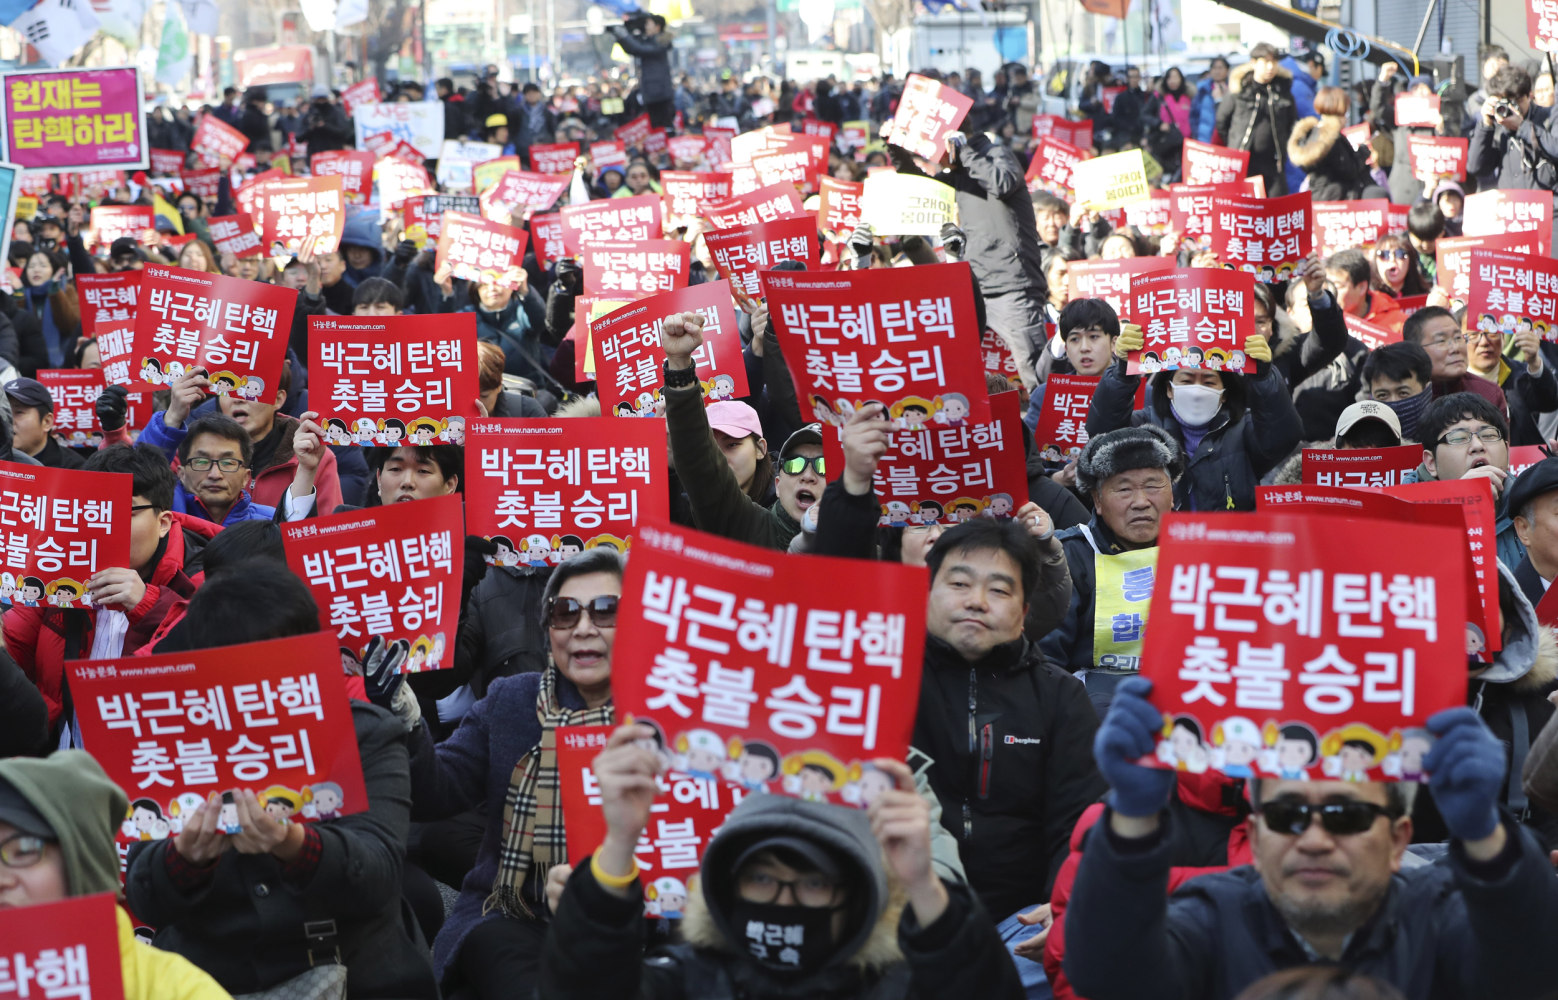 30 injured as thousands celebrate Park Geun-hye's ouster in Seoul